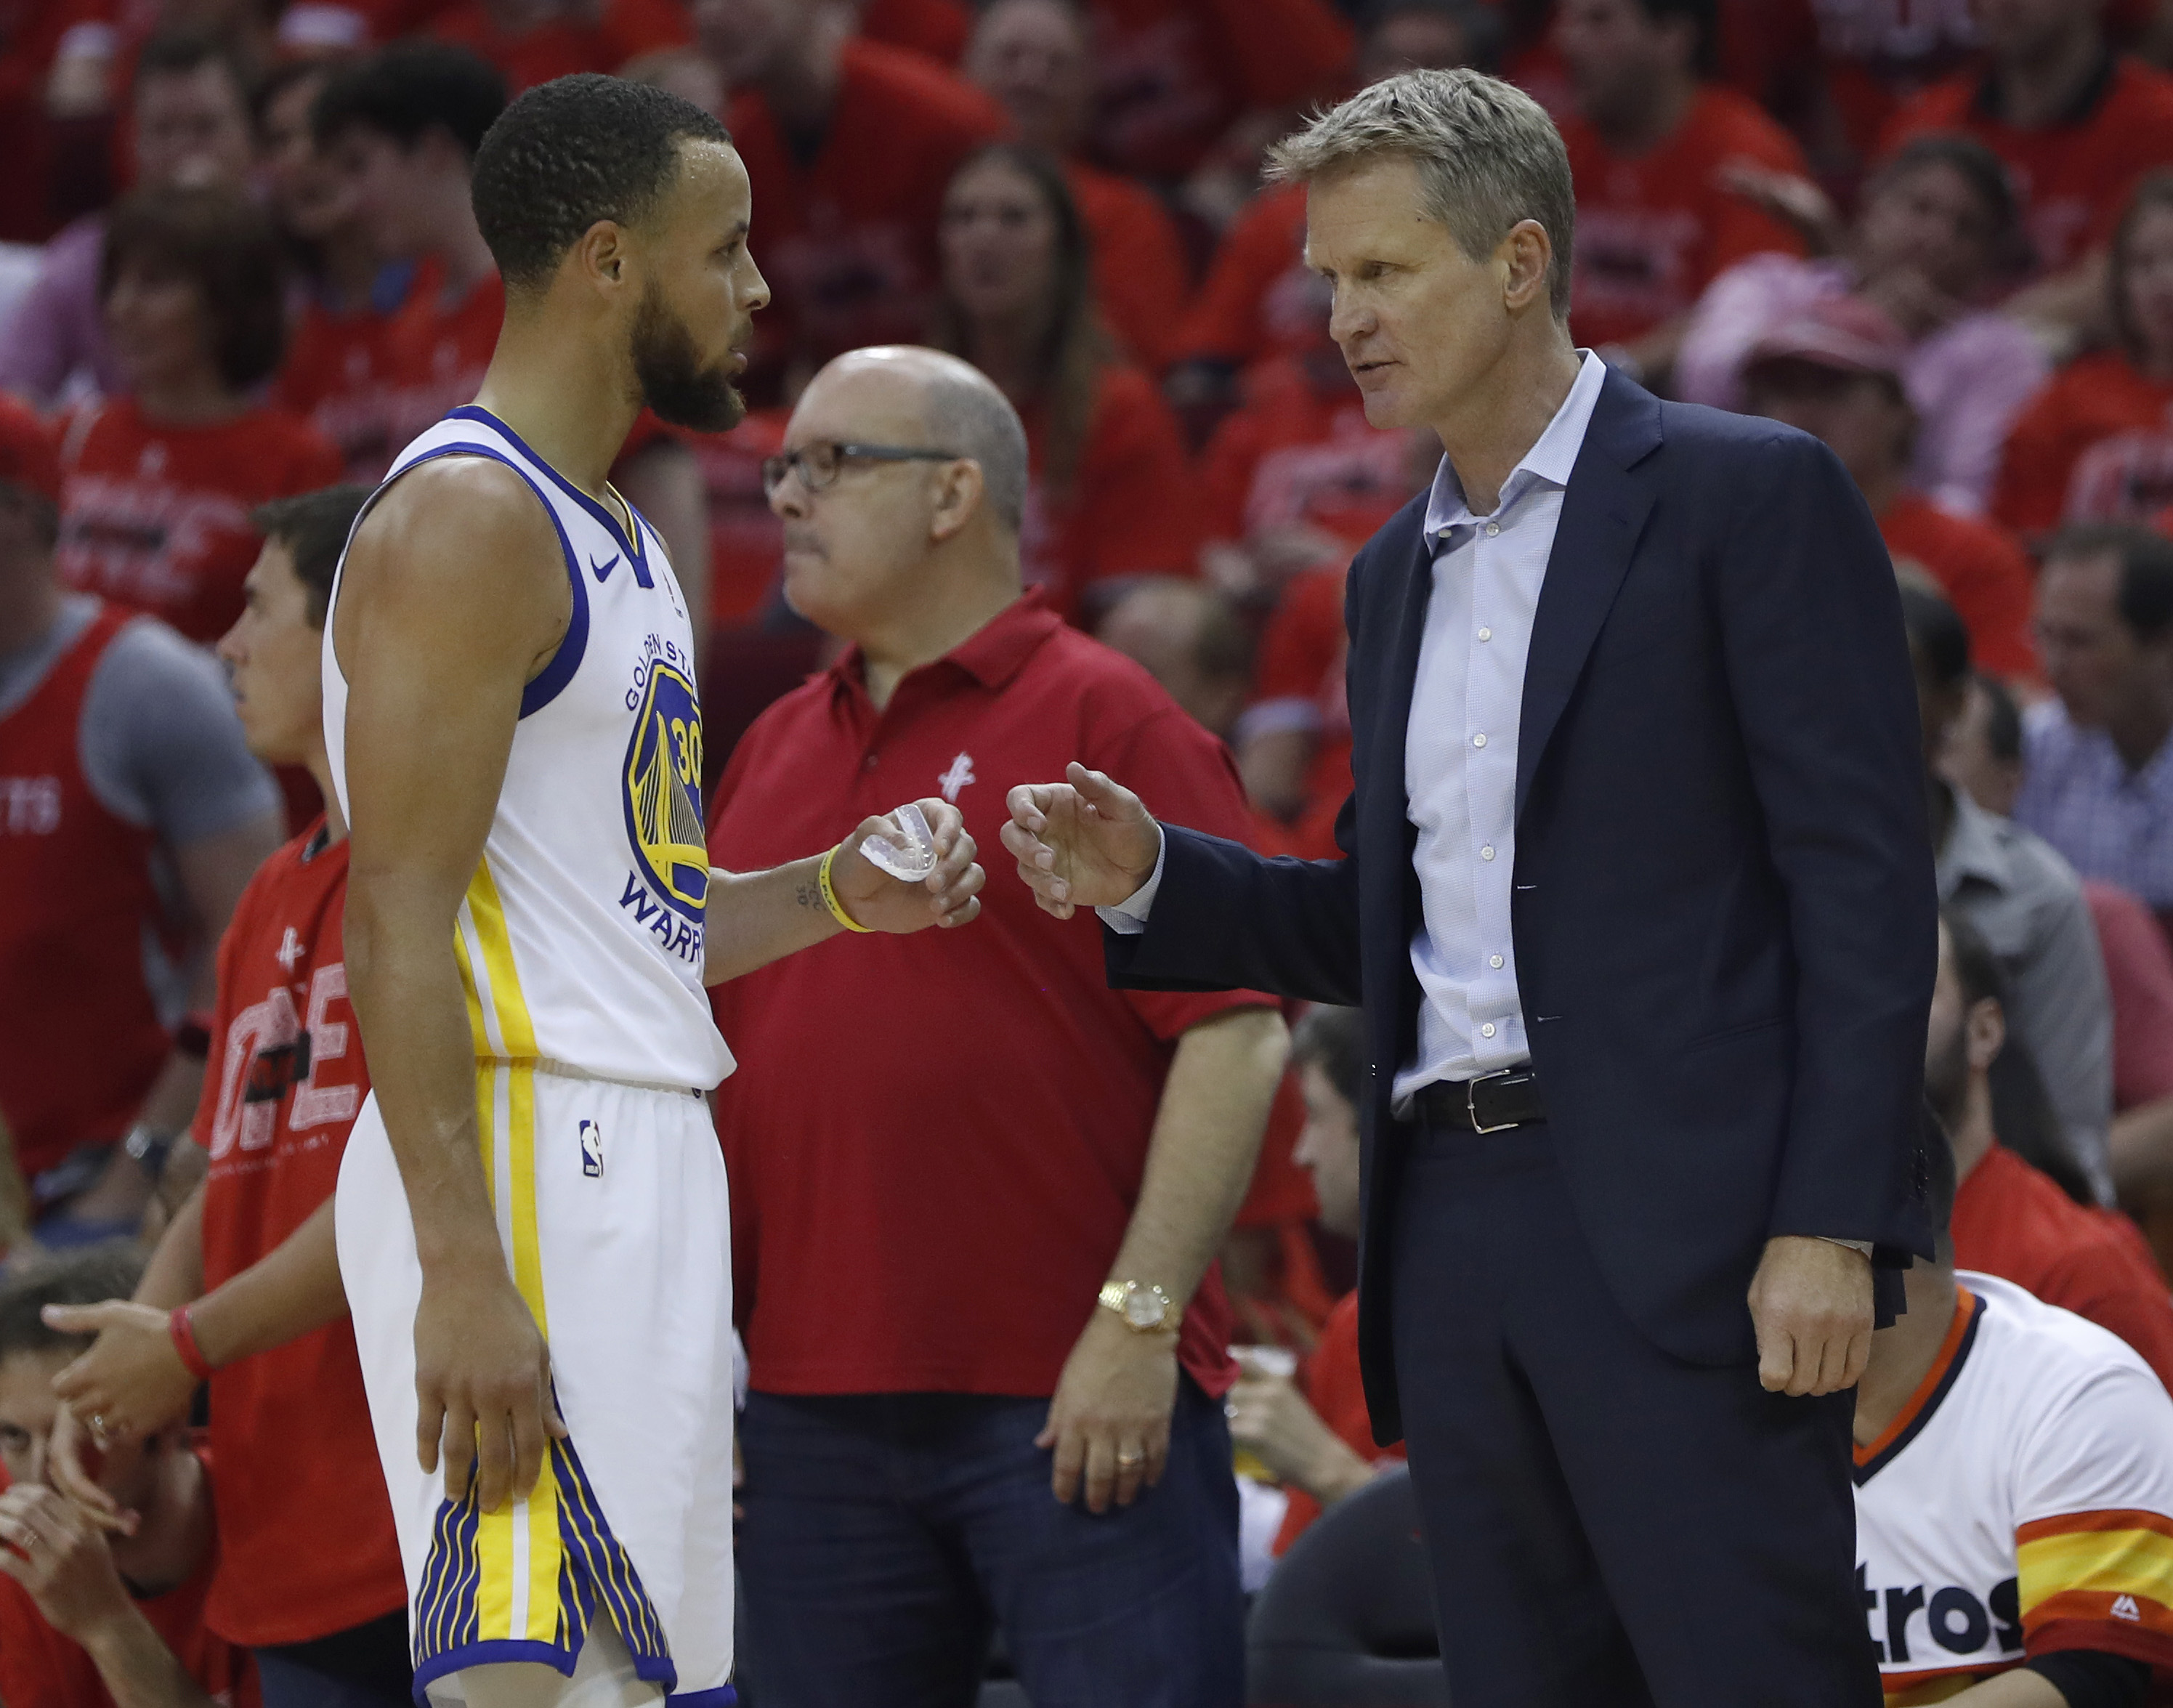 Golden State Warriors head coach Steve Kerr talks to Golden State Warriors Stephen Curry during a timeout during their game against the Houston Rockets in the first quarter of Game 7 of the NBA Western Conference finals at the Toyota Center in Houst